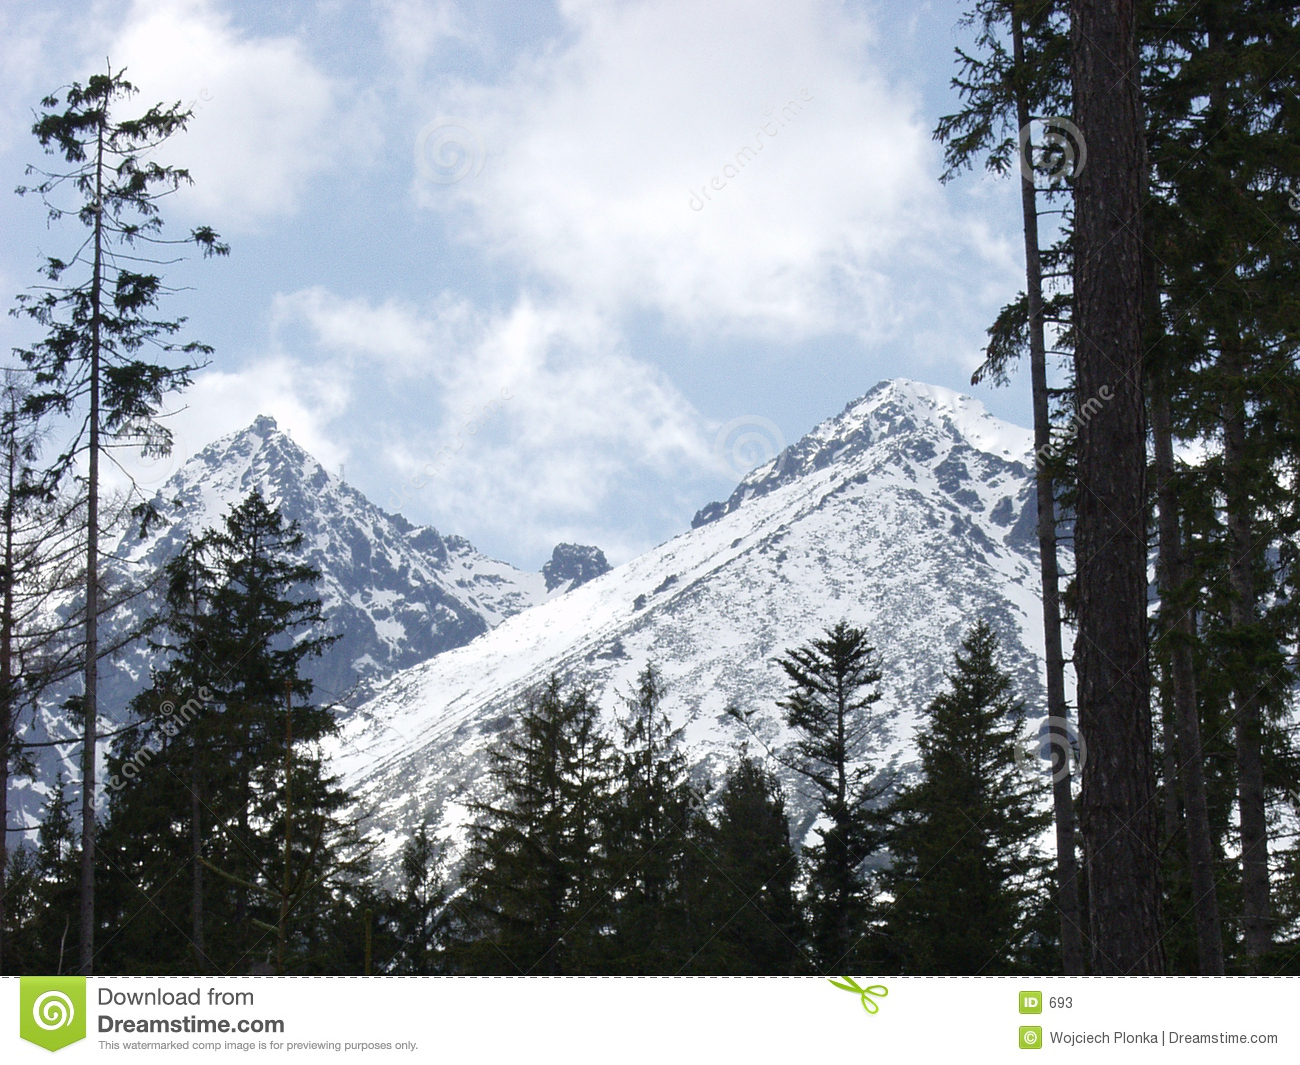 Lomnica mountain